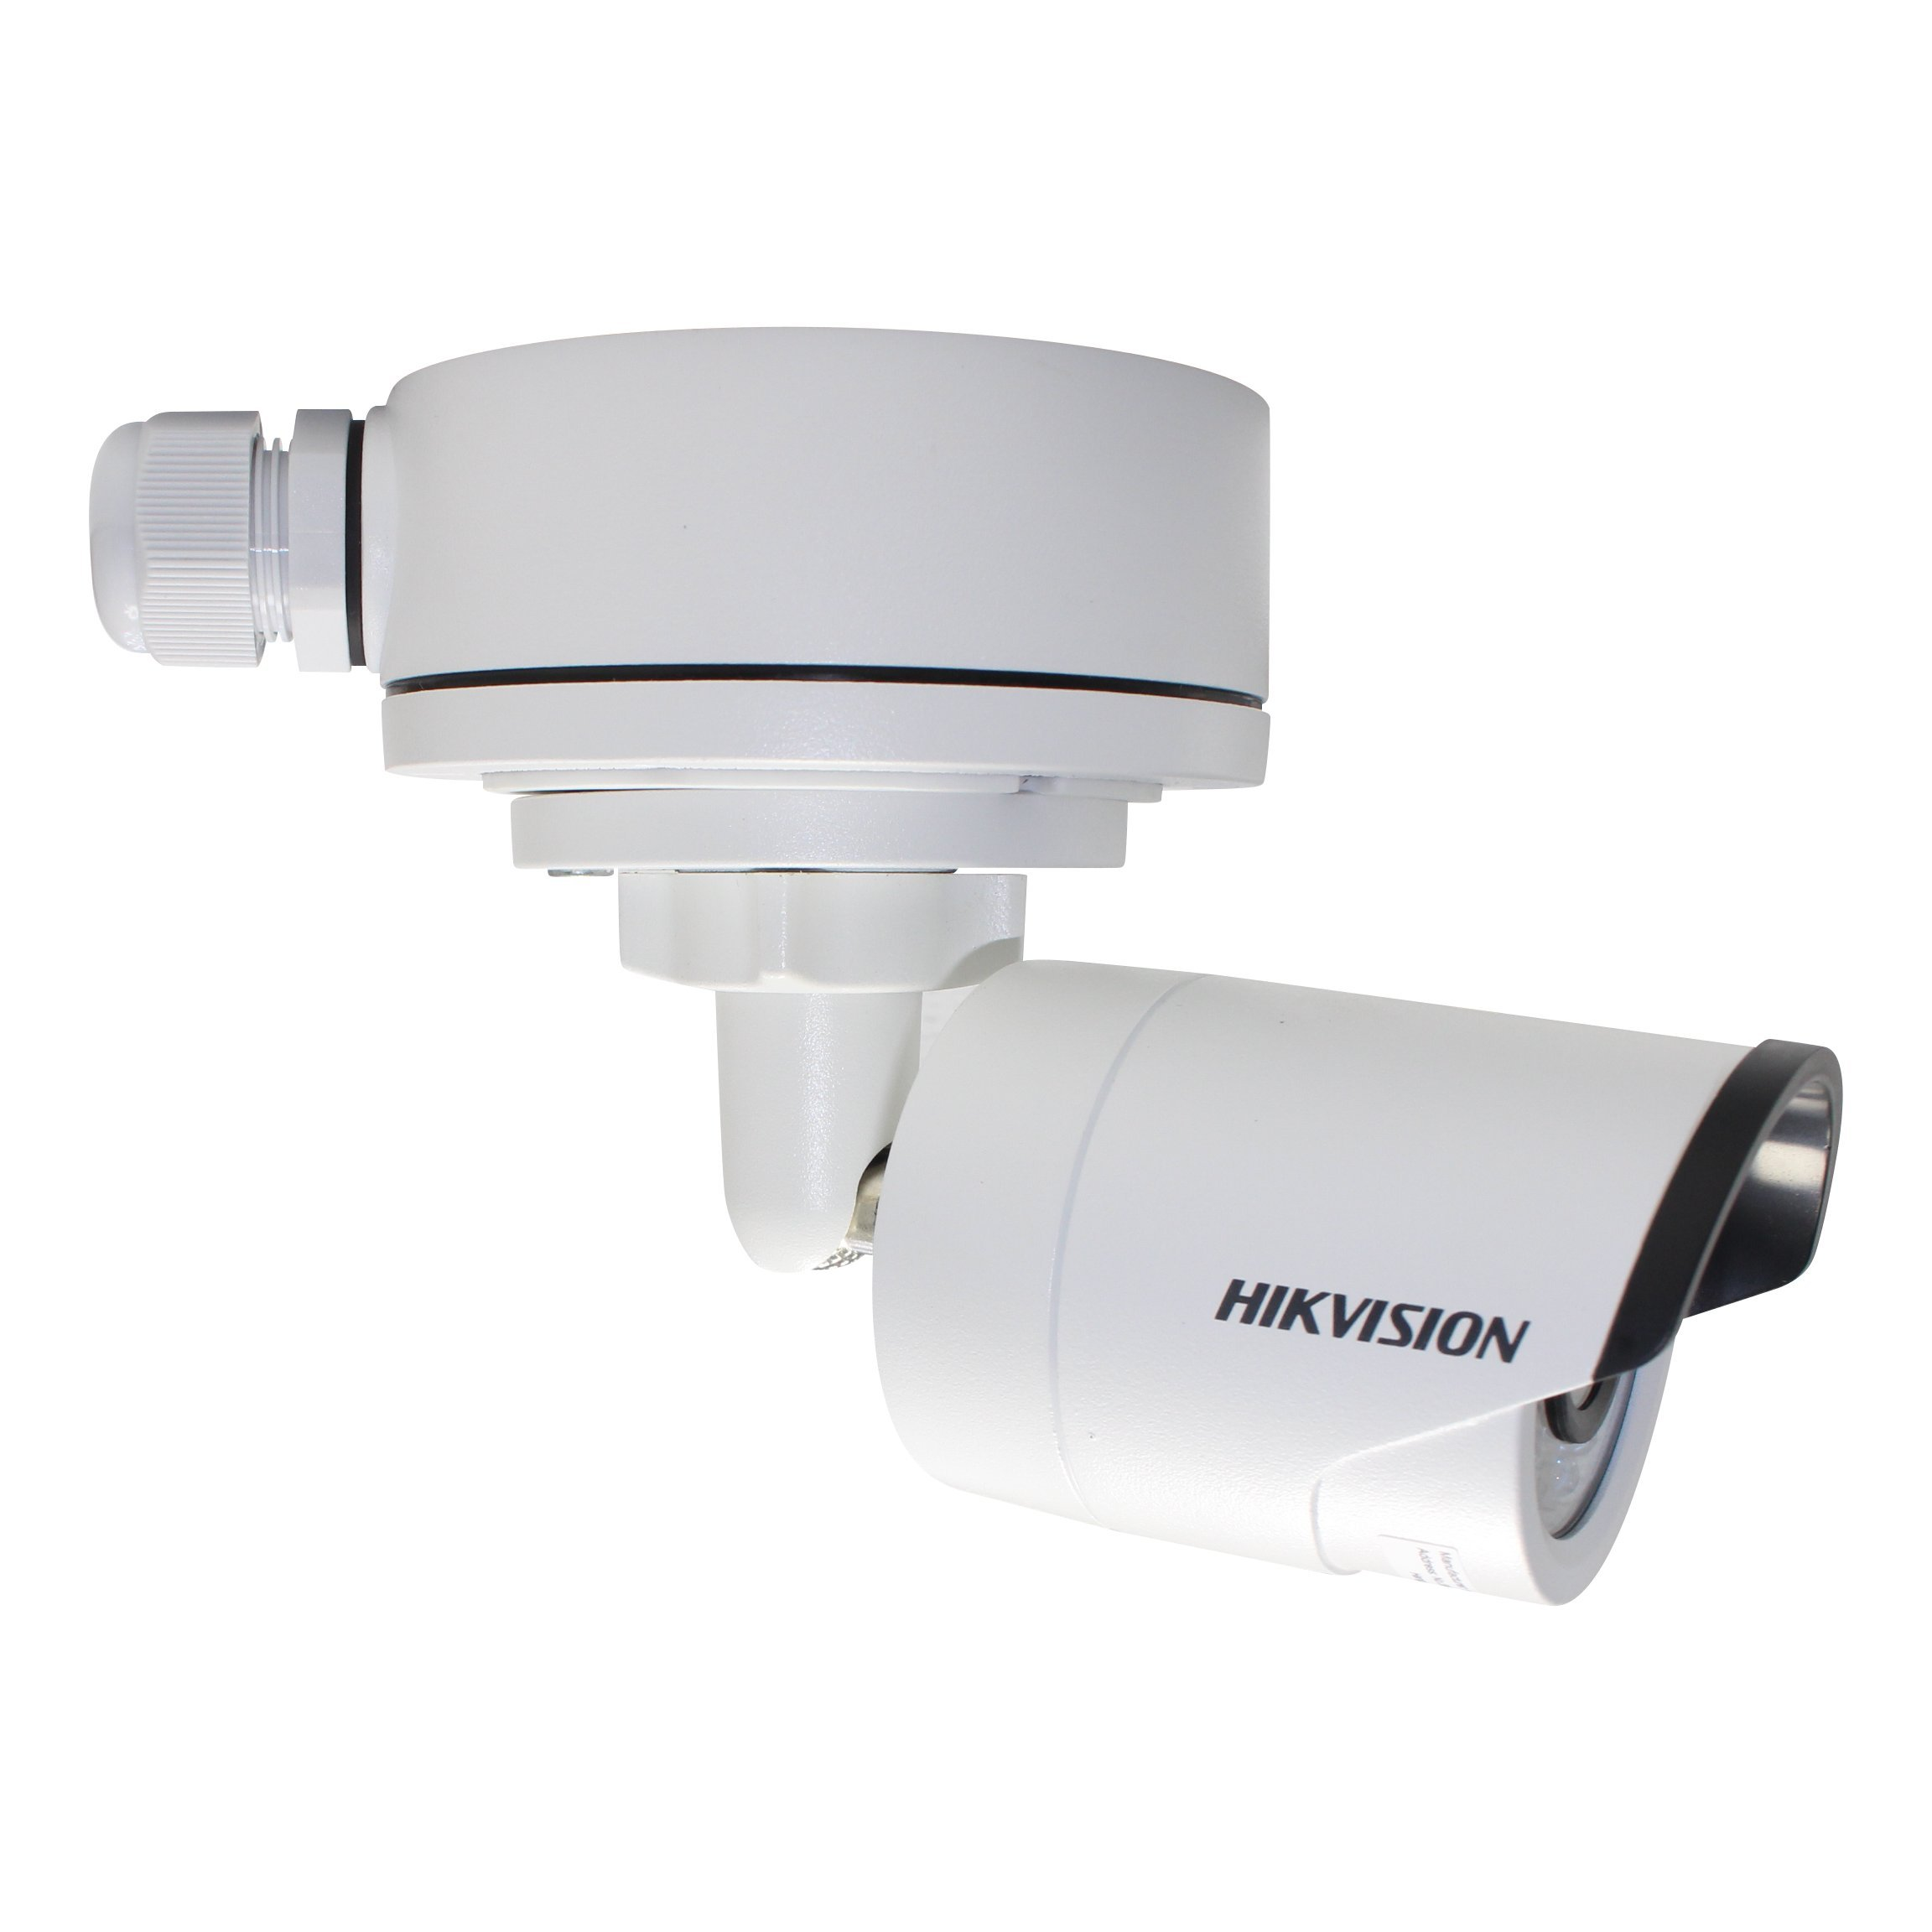 Camera DS-1280ZJ-XS Bullet HikVision Junction Box for Dome